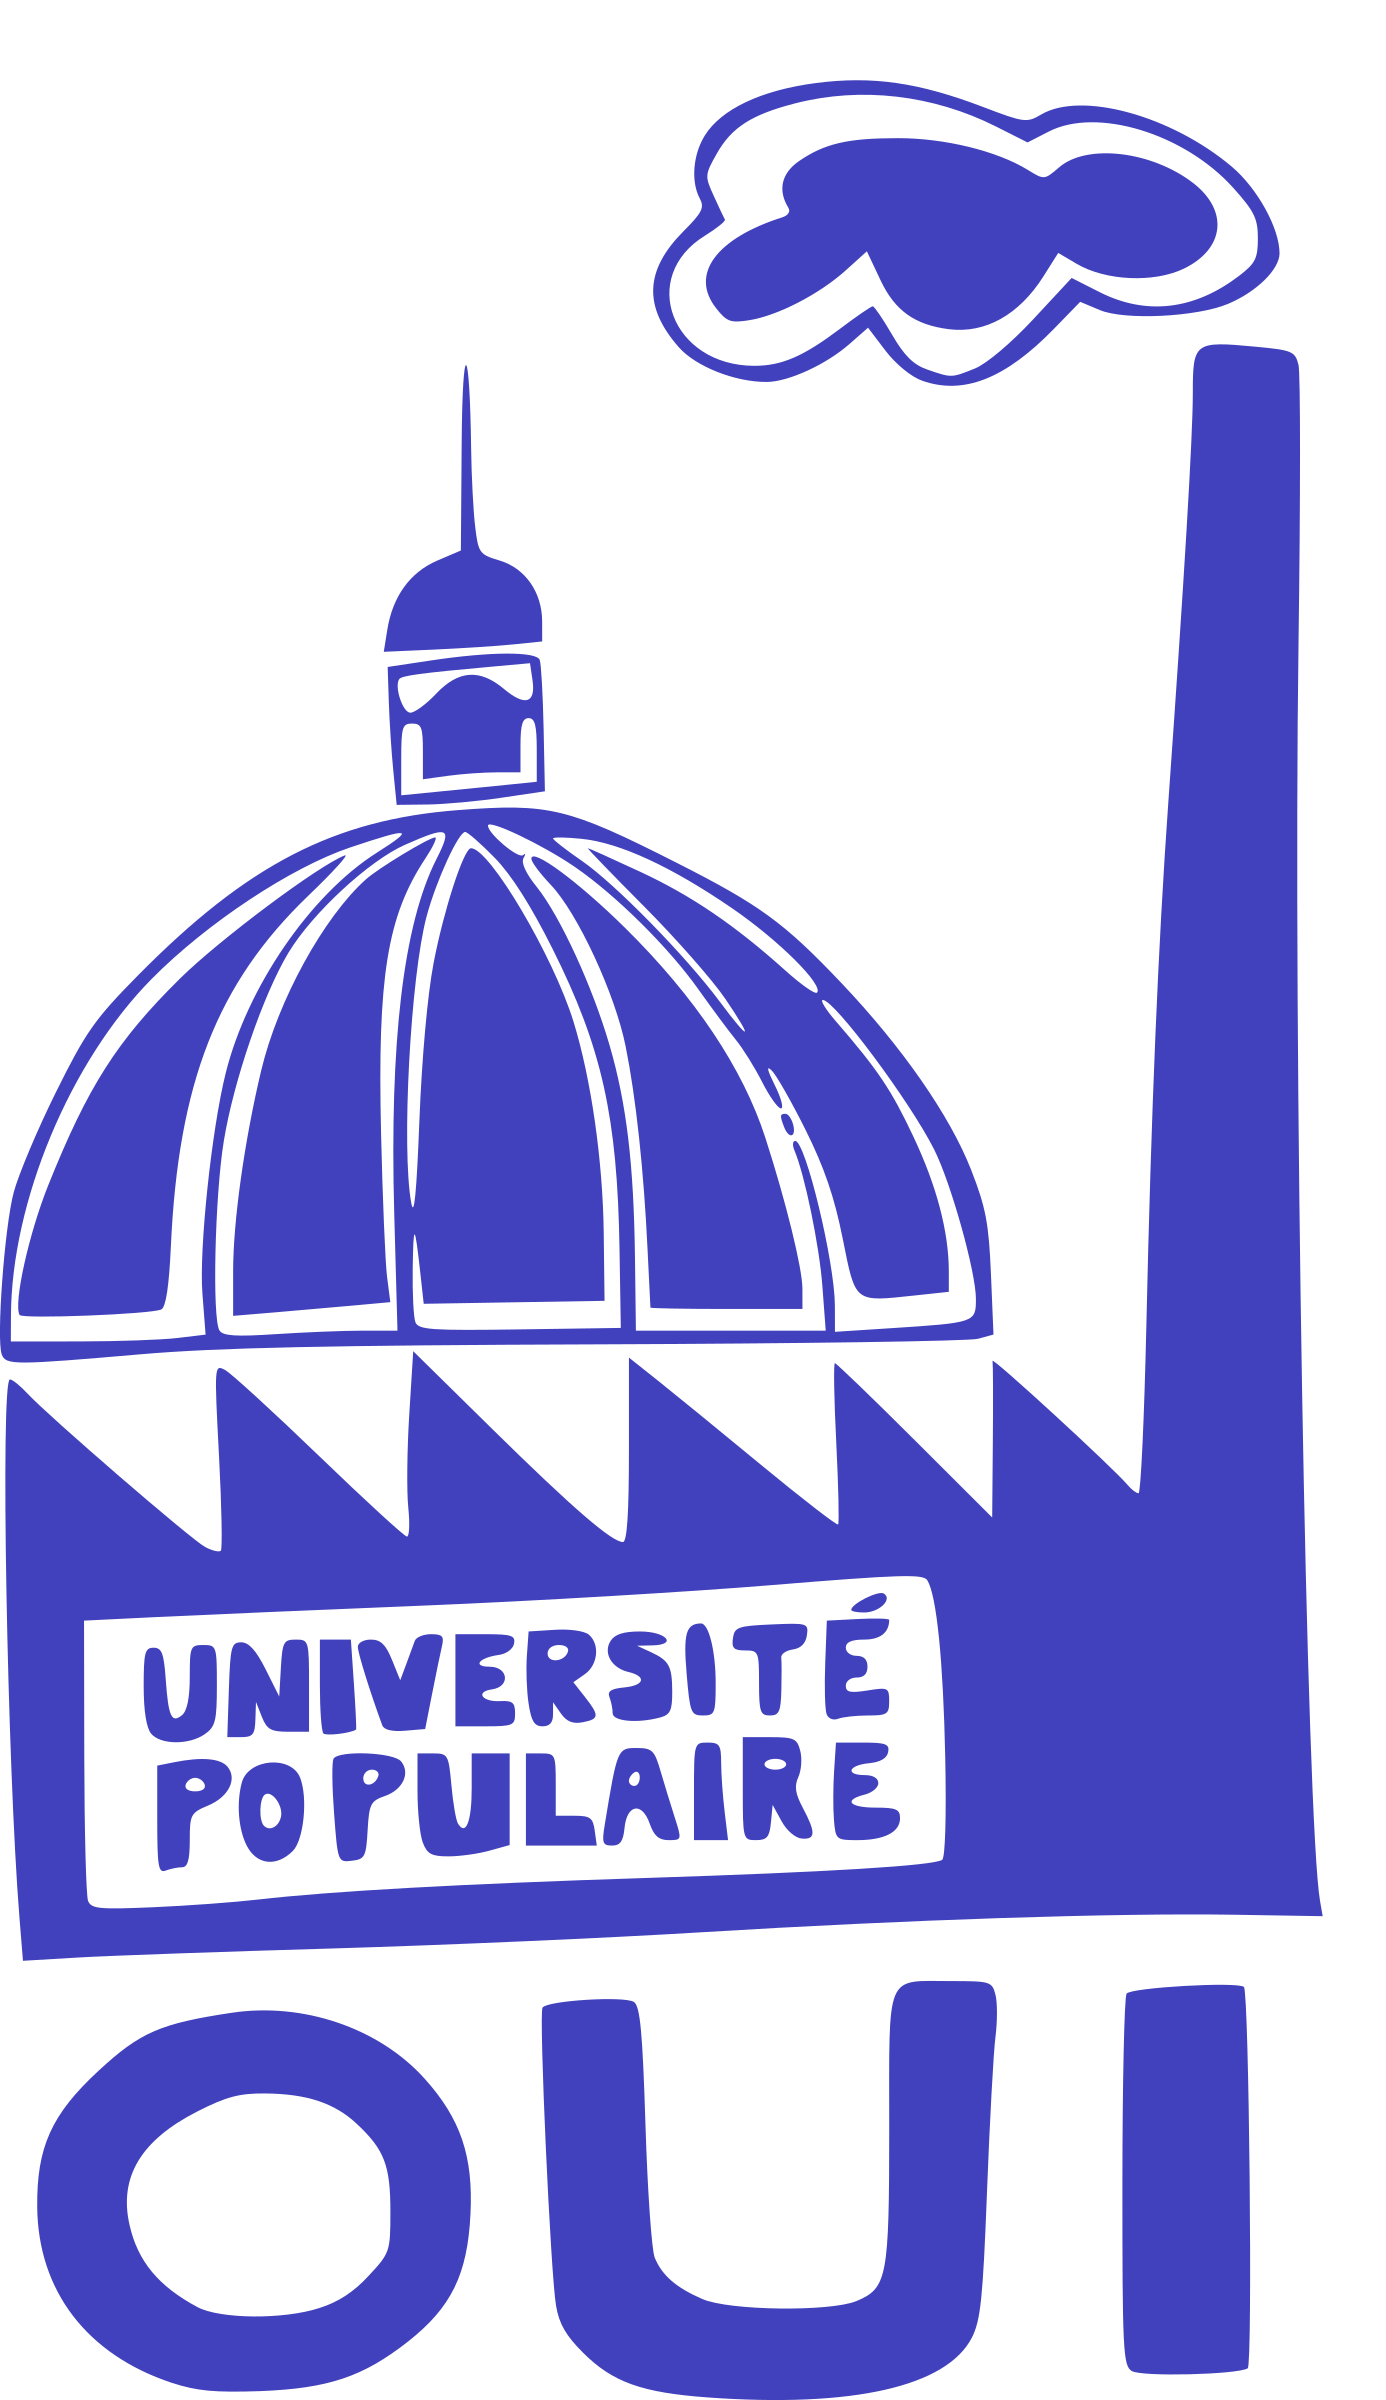 Université populaire by ben